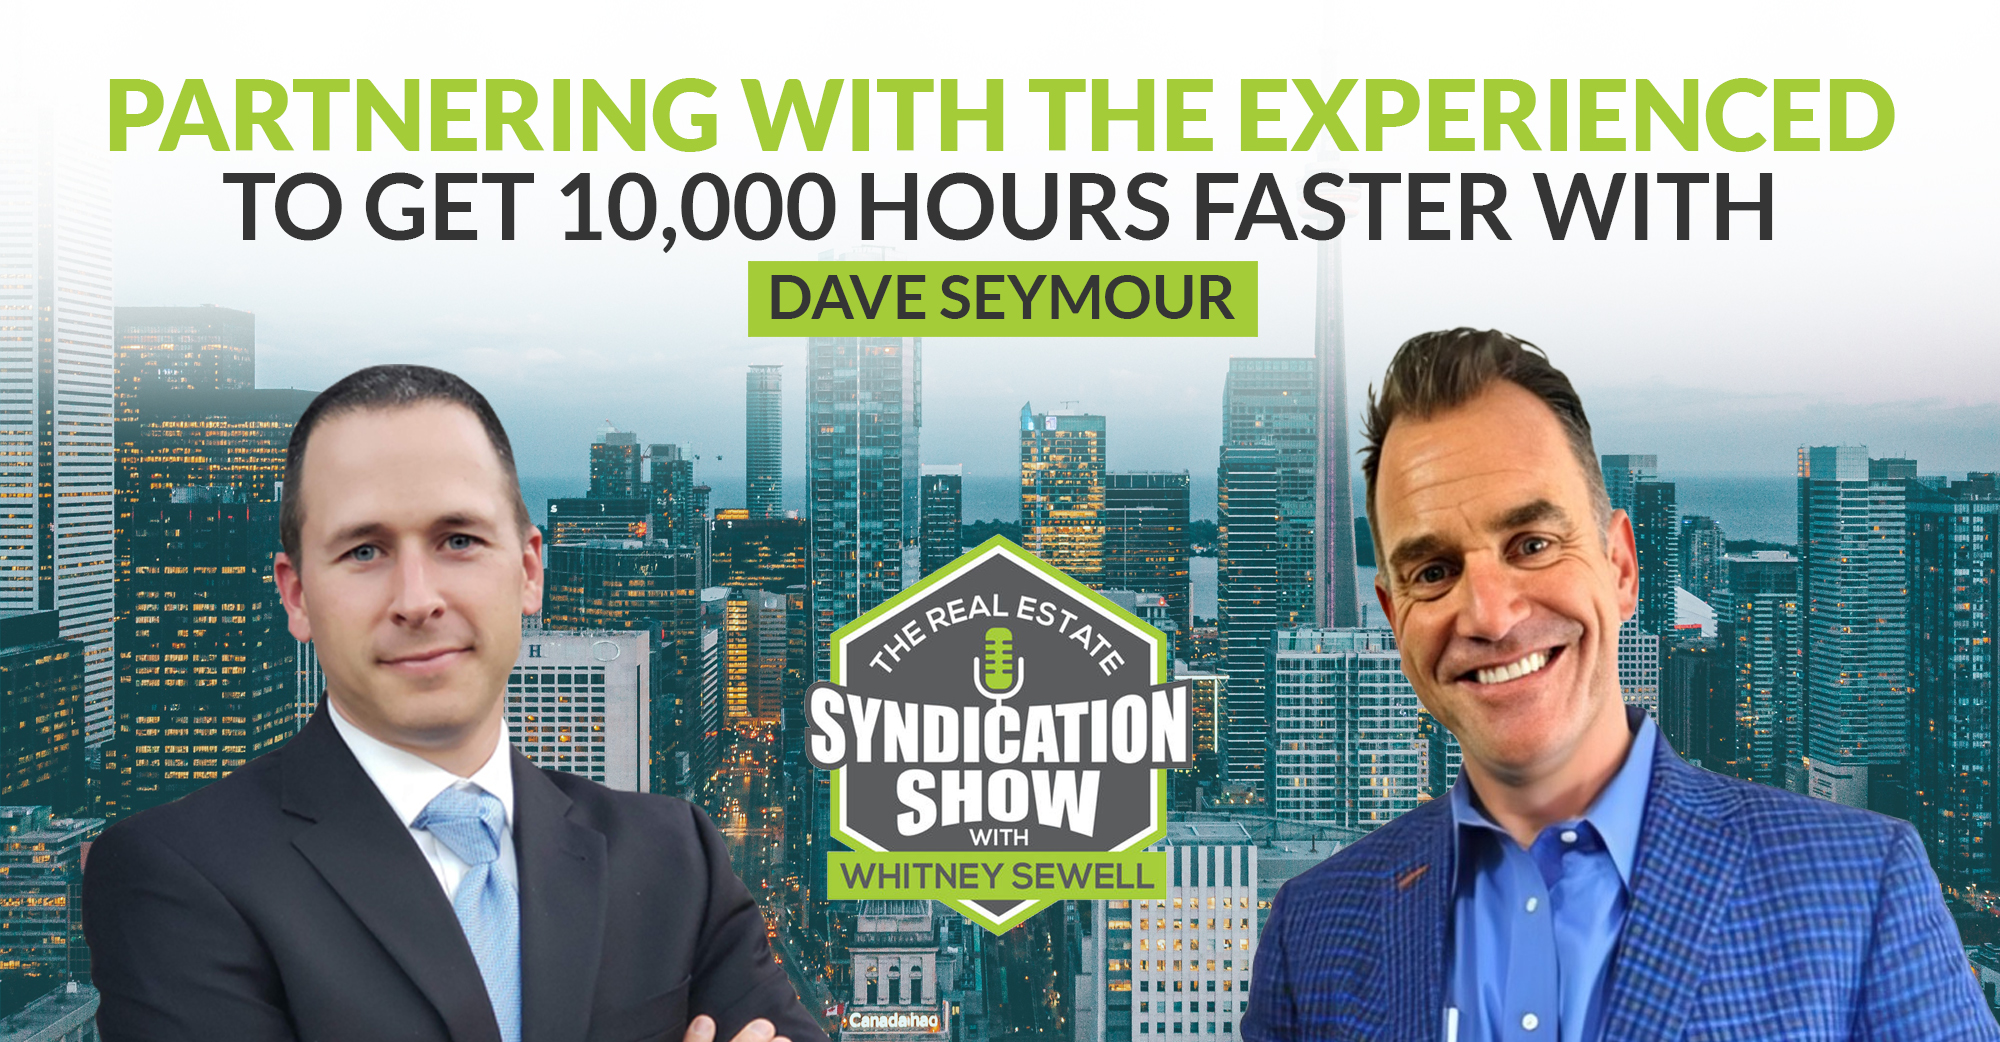 Partnering with the Experienced to Get 10,000 Hours Faster with Dave Seymour